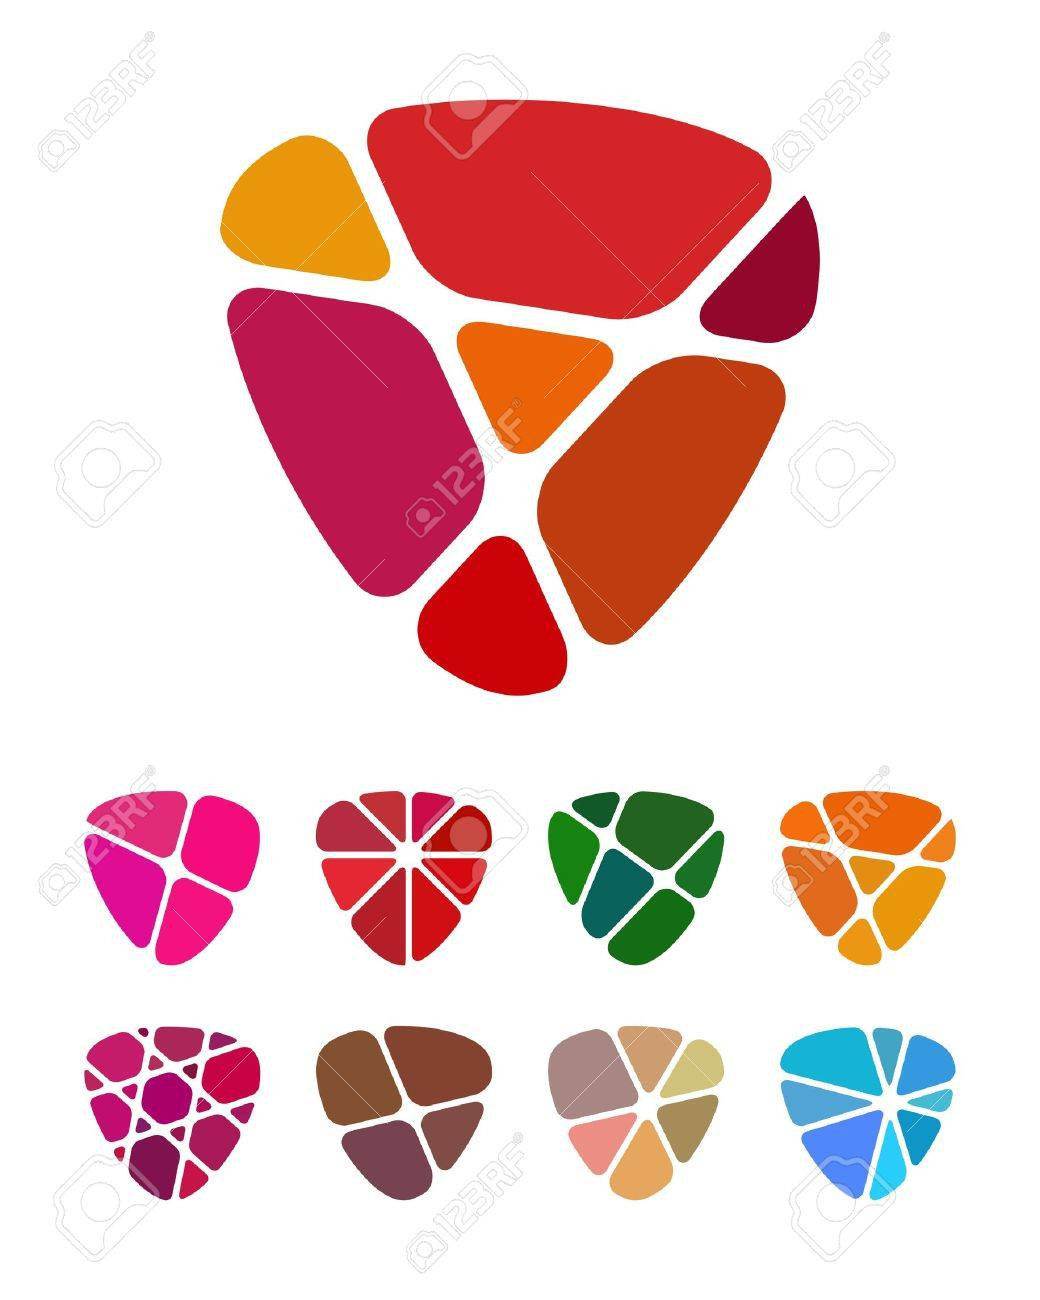 Design shield or heart logo element  Colorful abstract pattern, icon set  You can use in the jewelry shop, leisure club, and other commercial image Stock Vector - 18681909